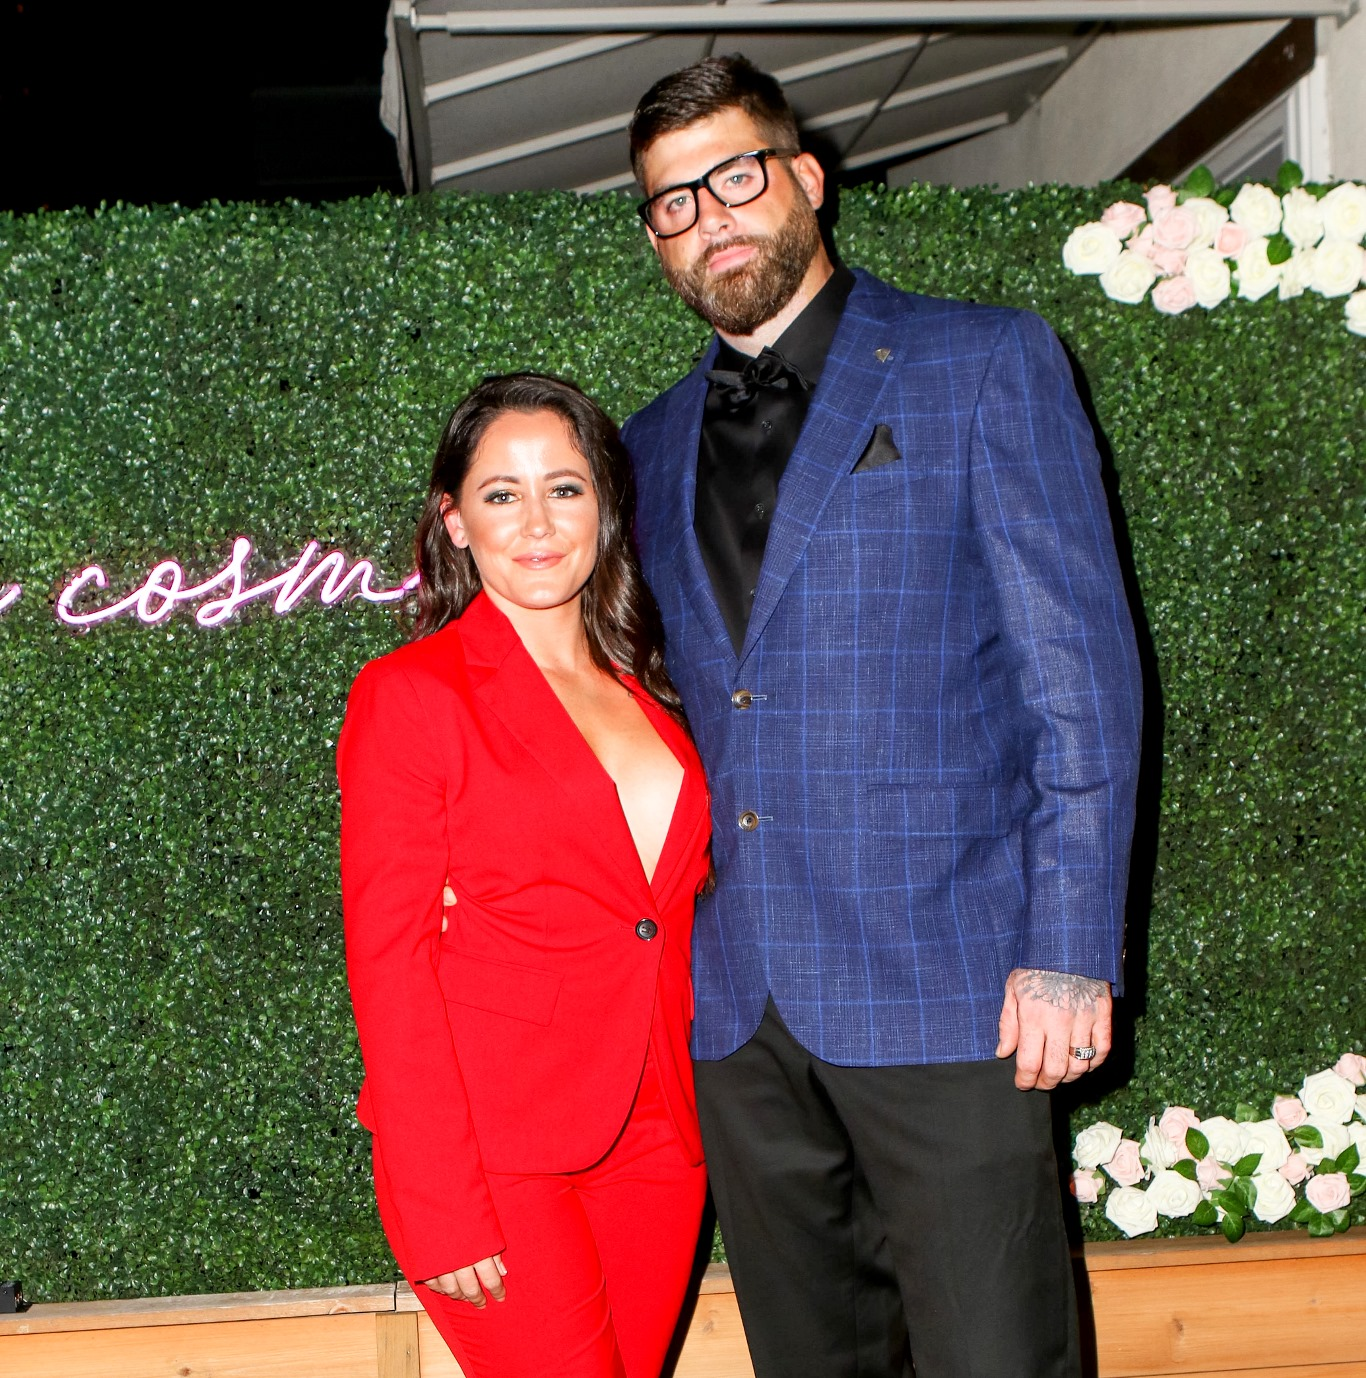 Teen Mom 2 Star Jenelle Evans' Husband David Eason Finally Admits to Killing Family Dog, Will Cops Reopen the Case?